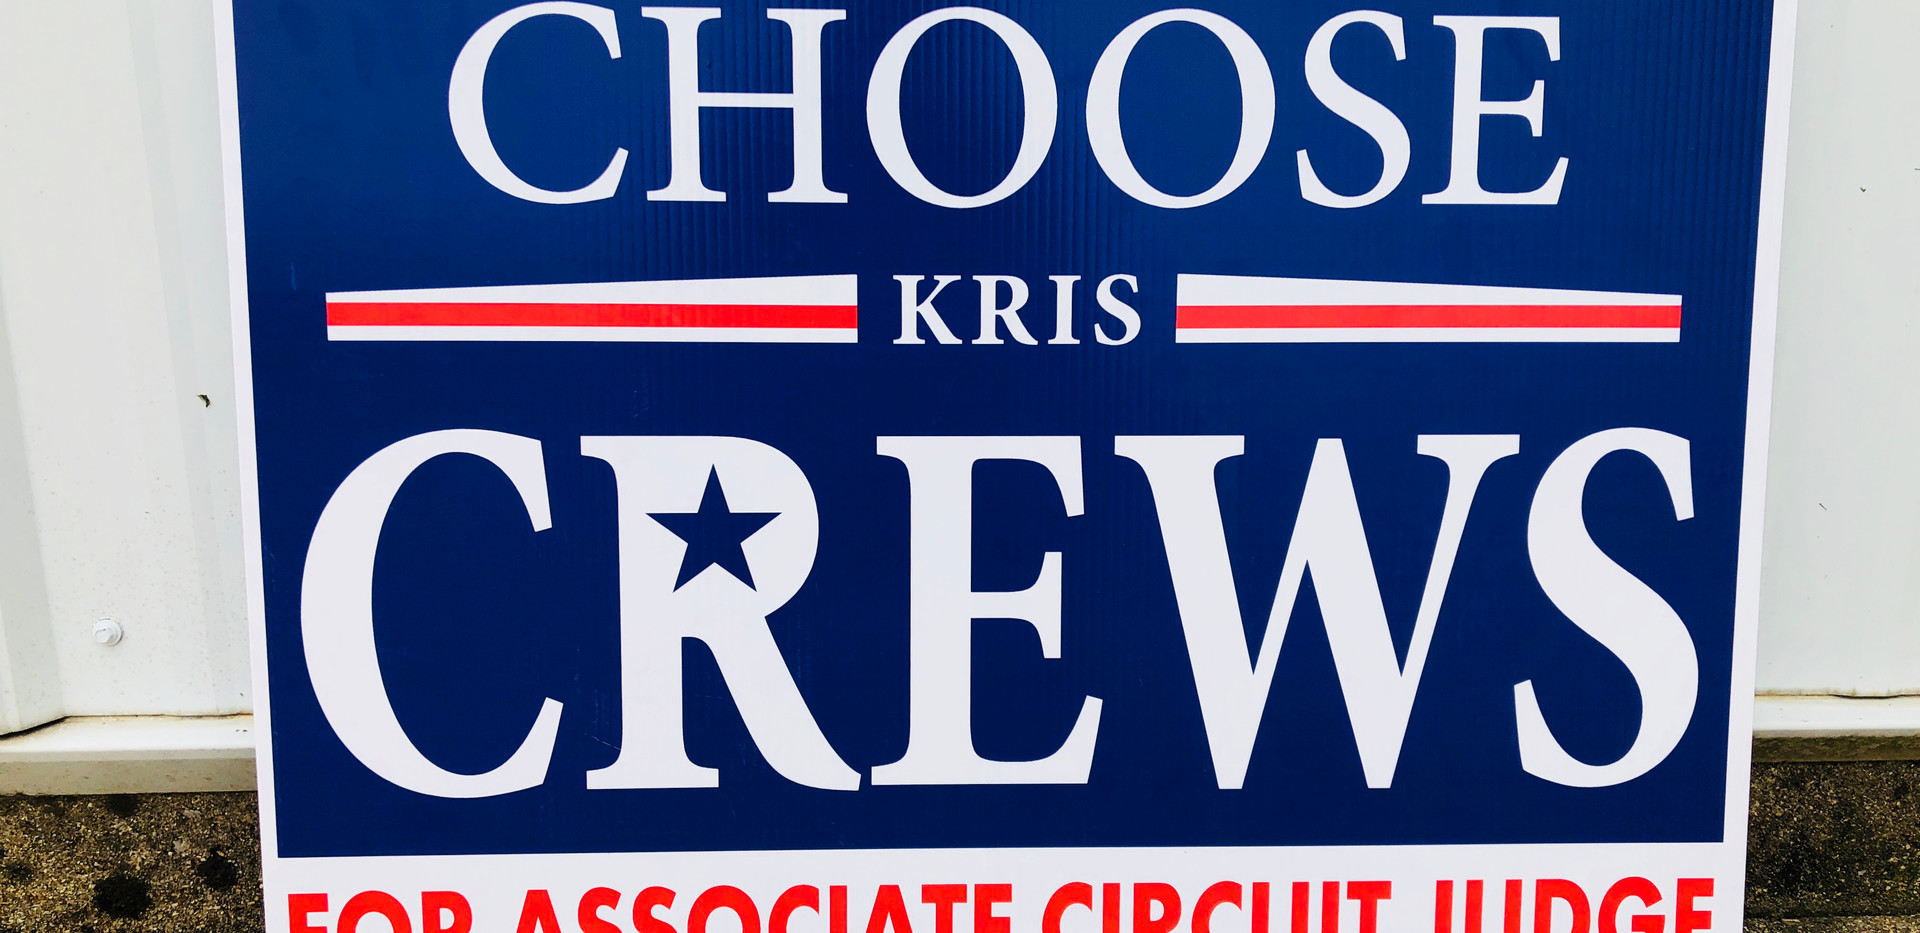 yard sign political sign